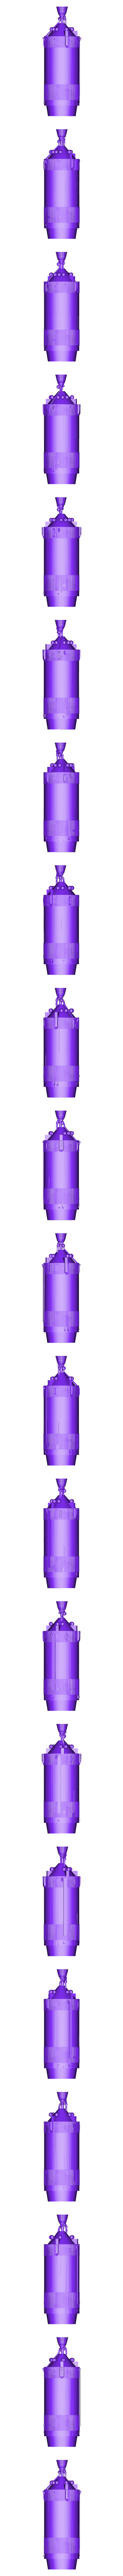 S-IV b.stl Download free STL file Saturn V Rocket • 3D printable model, spac3D